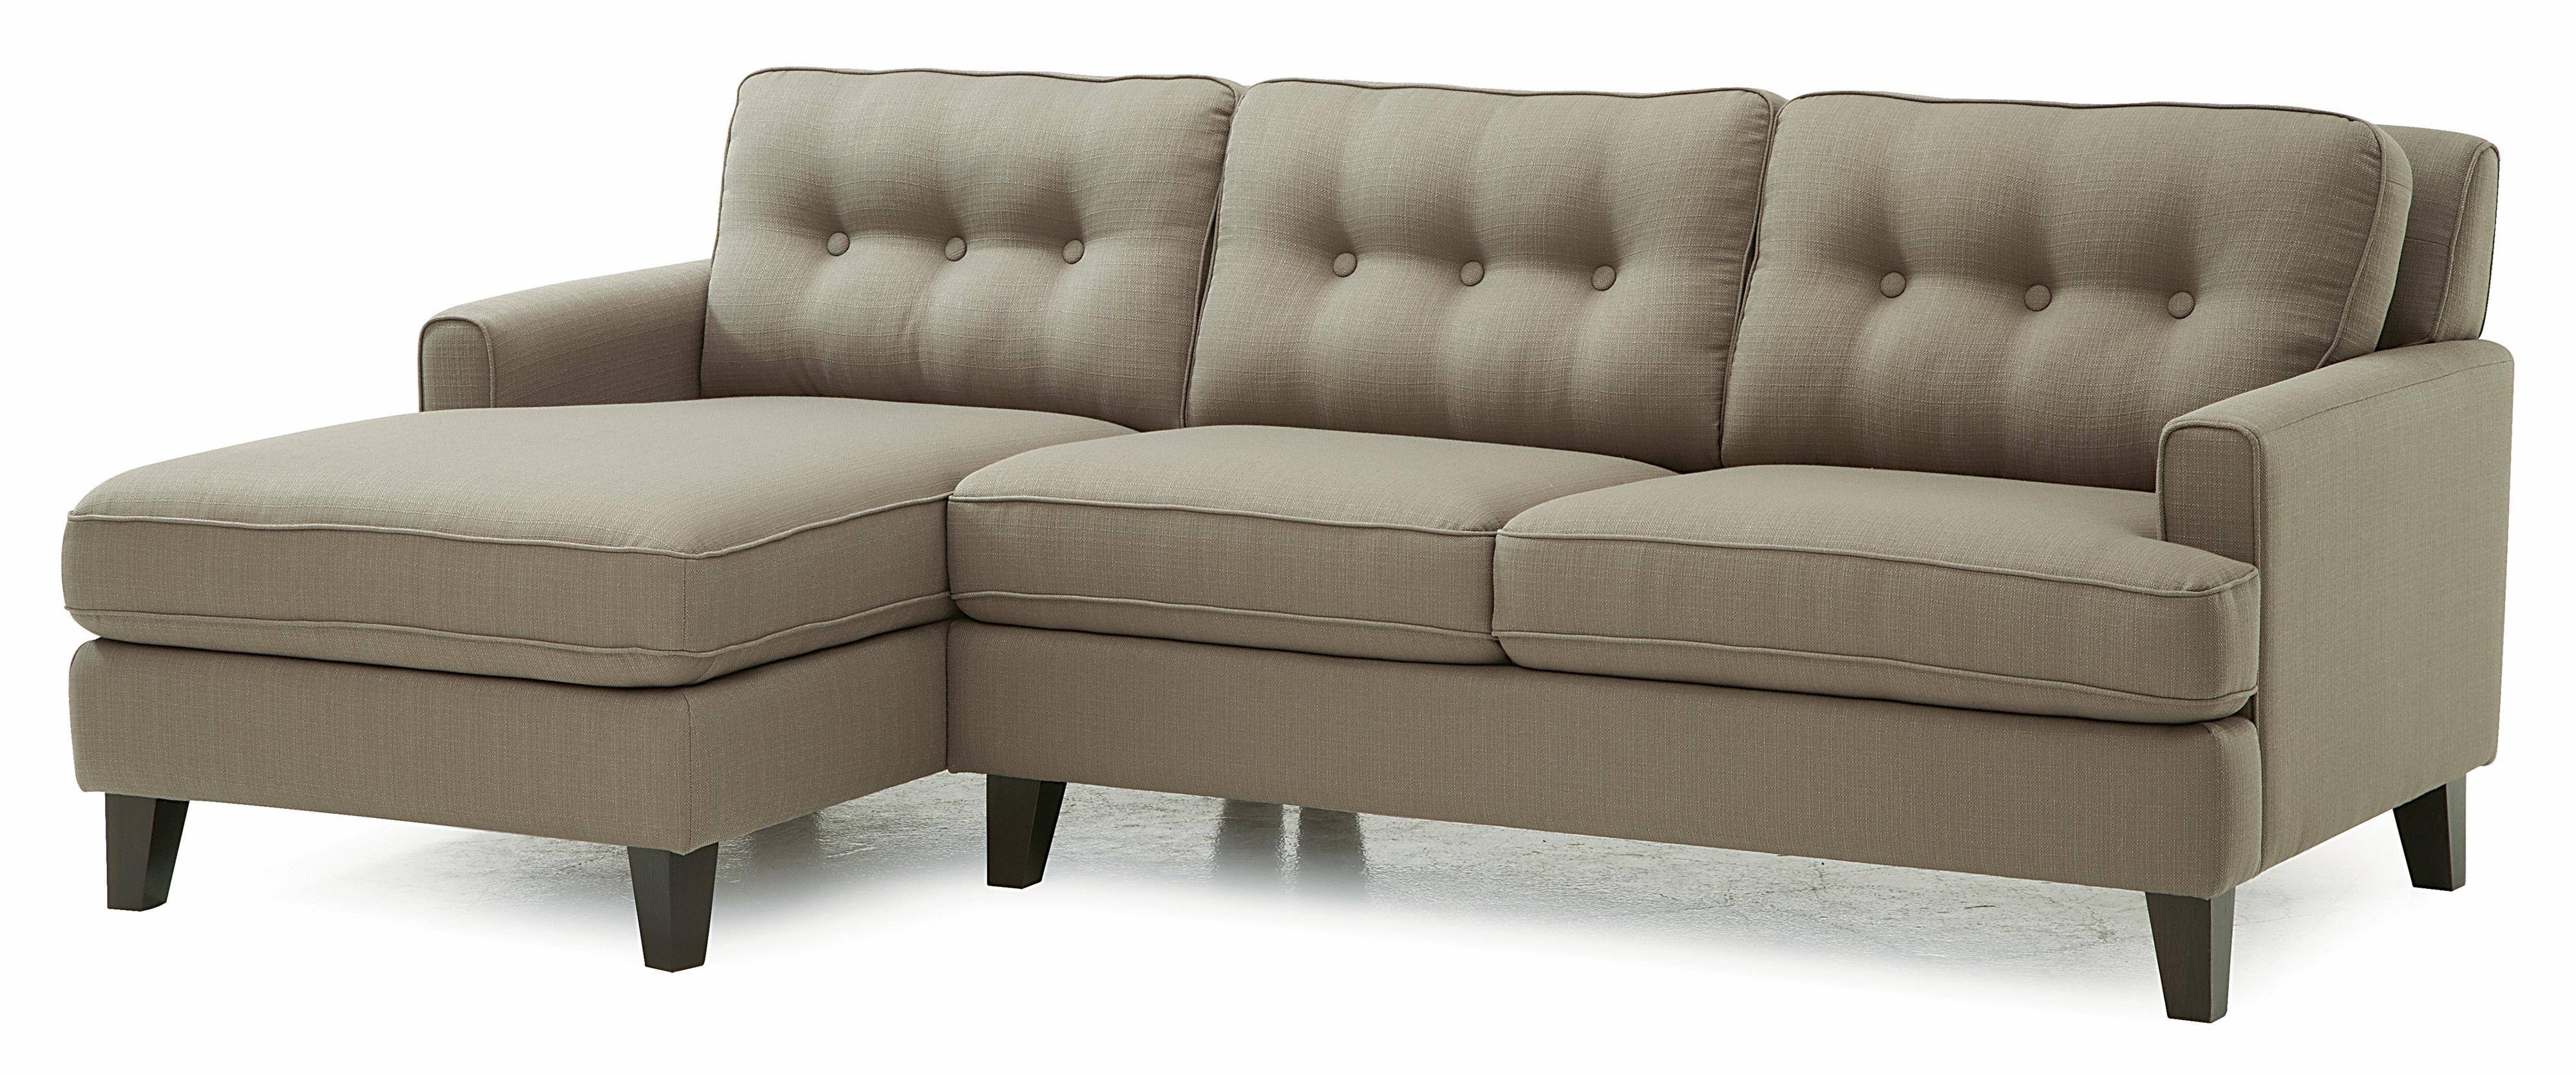 Two Piece Sectional Sofa With Chaise | Tehranmix Decoration pertaining to 10 Piece Sectional Sofa (Image 28 of 30)